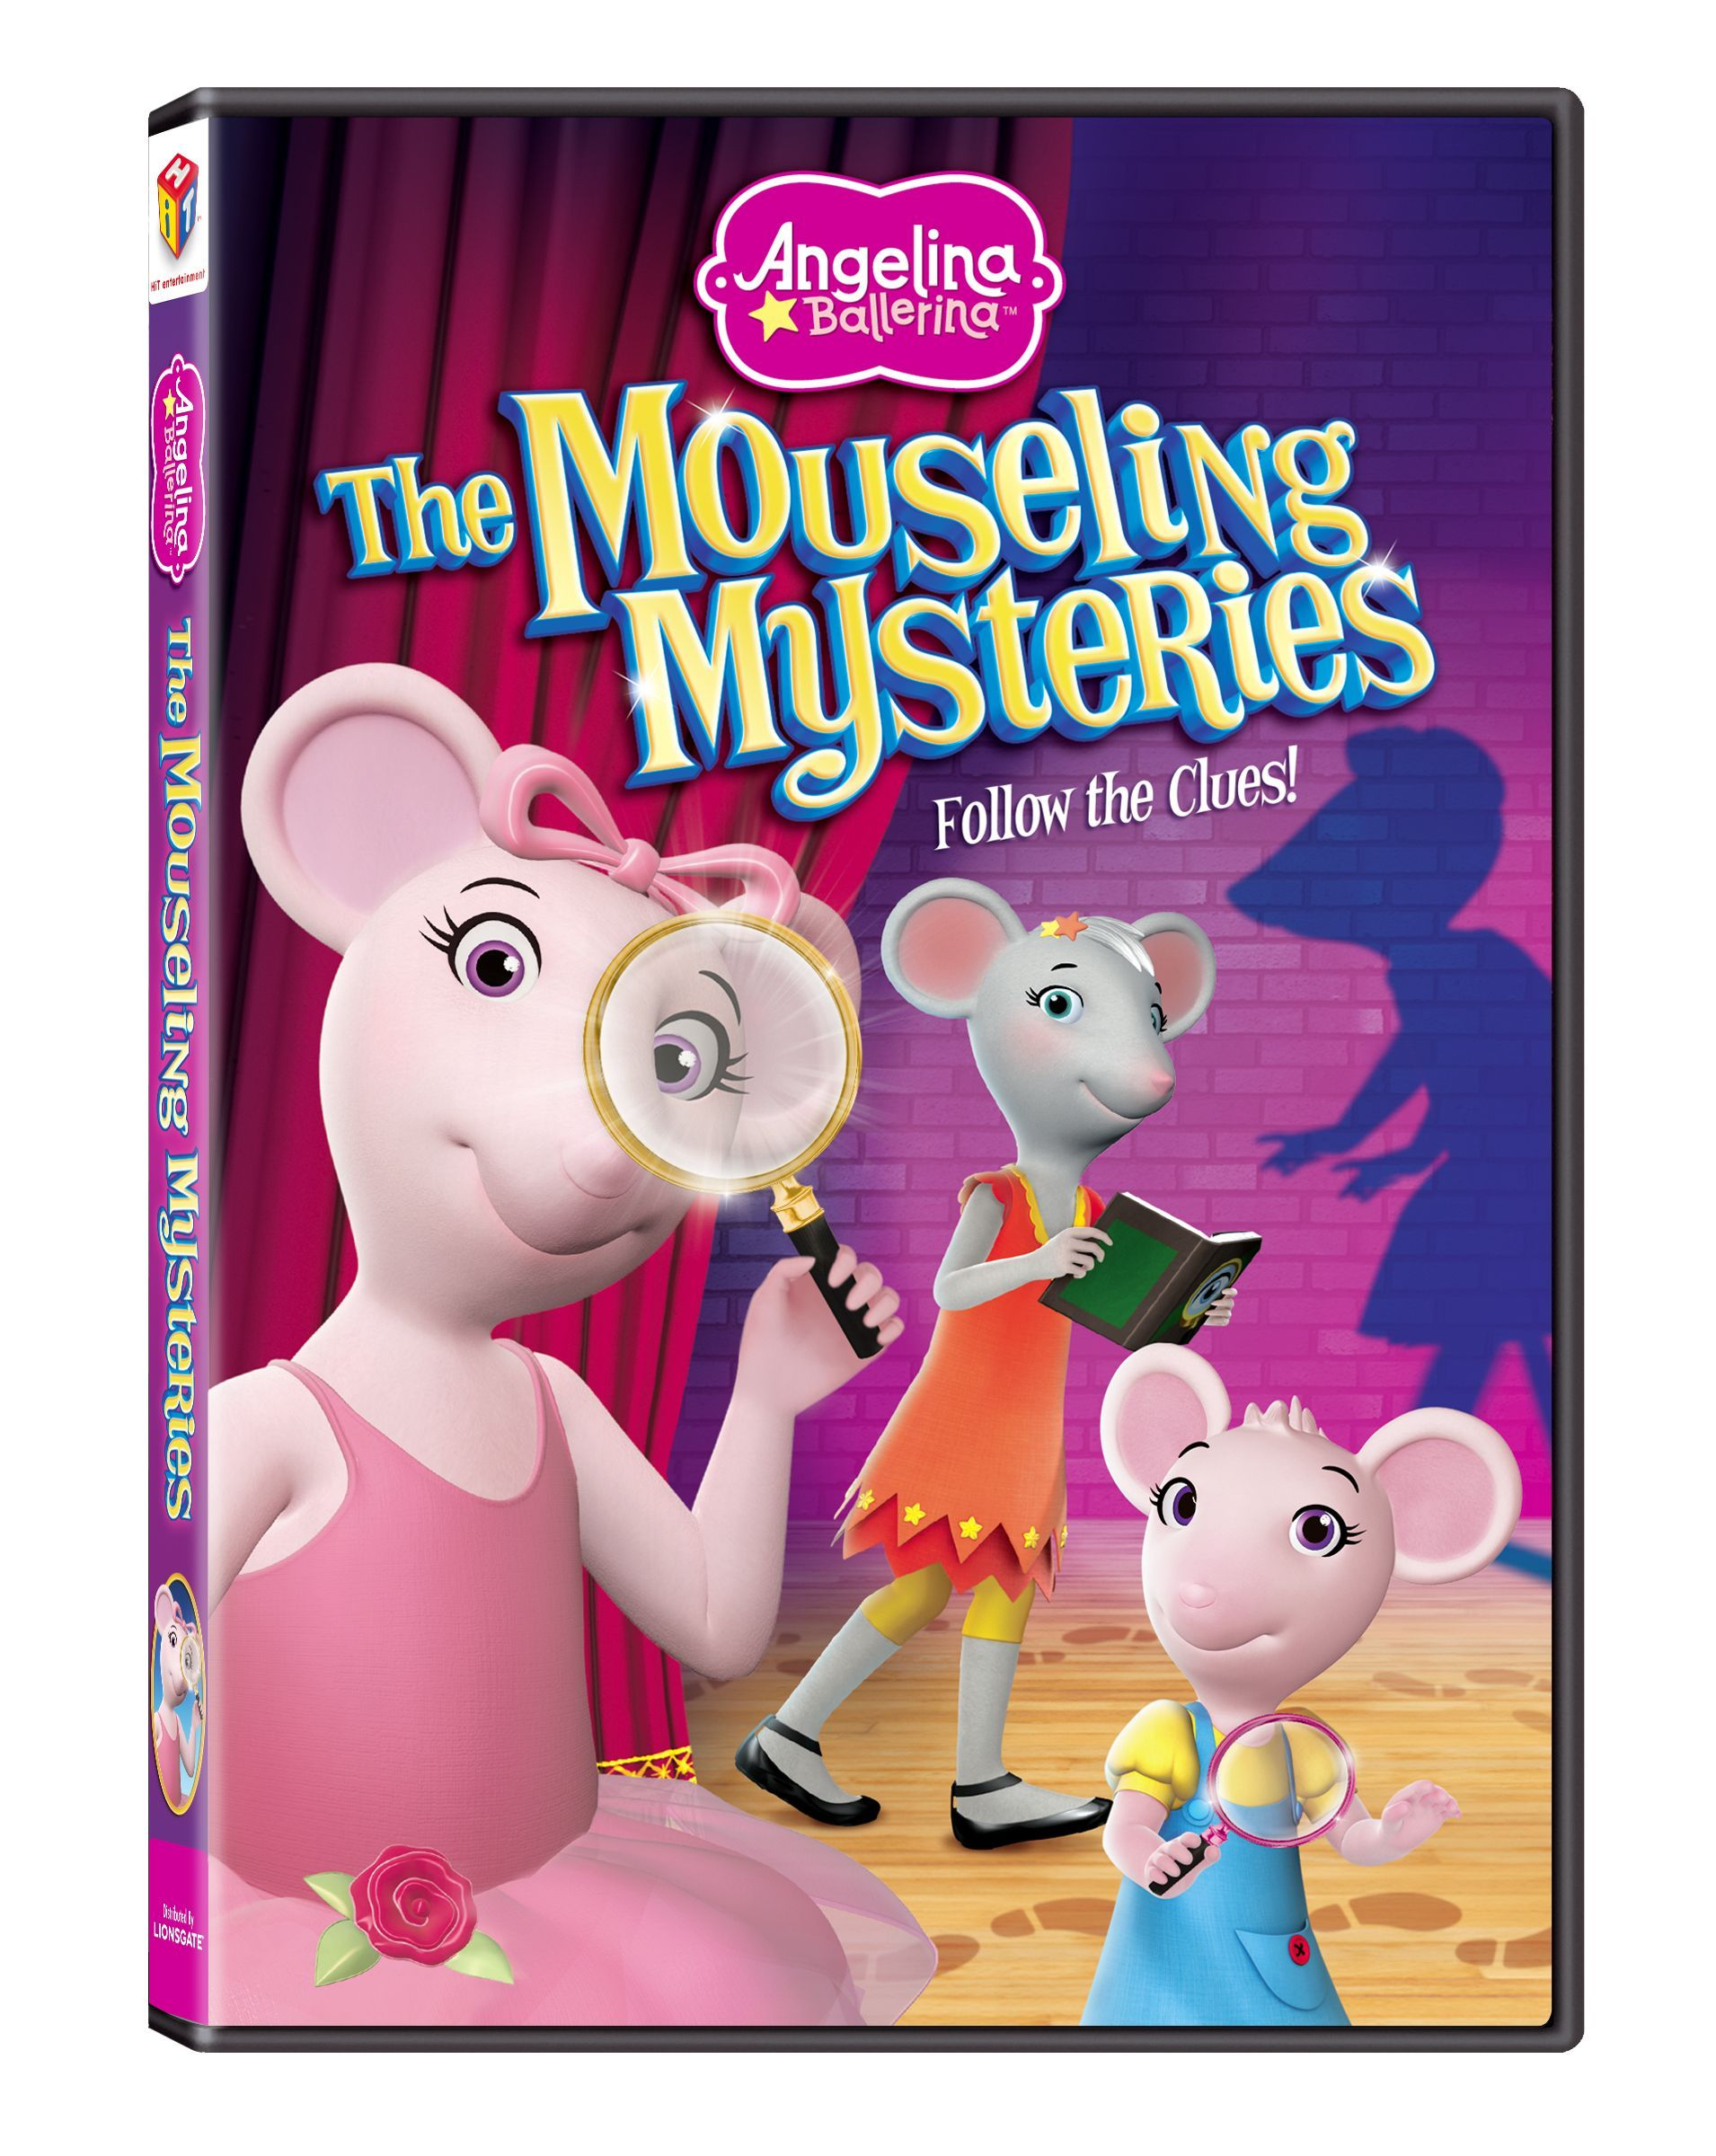 Angelina Ballerina In The Mouseling Mysteries Dvd Review Giveaway Angelina Ballerina Ballerina Mystery